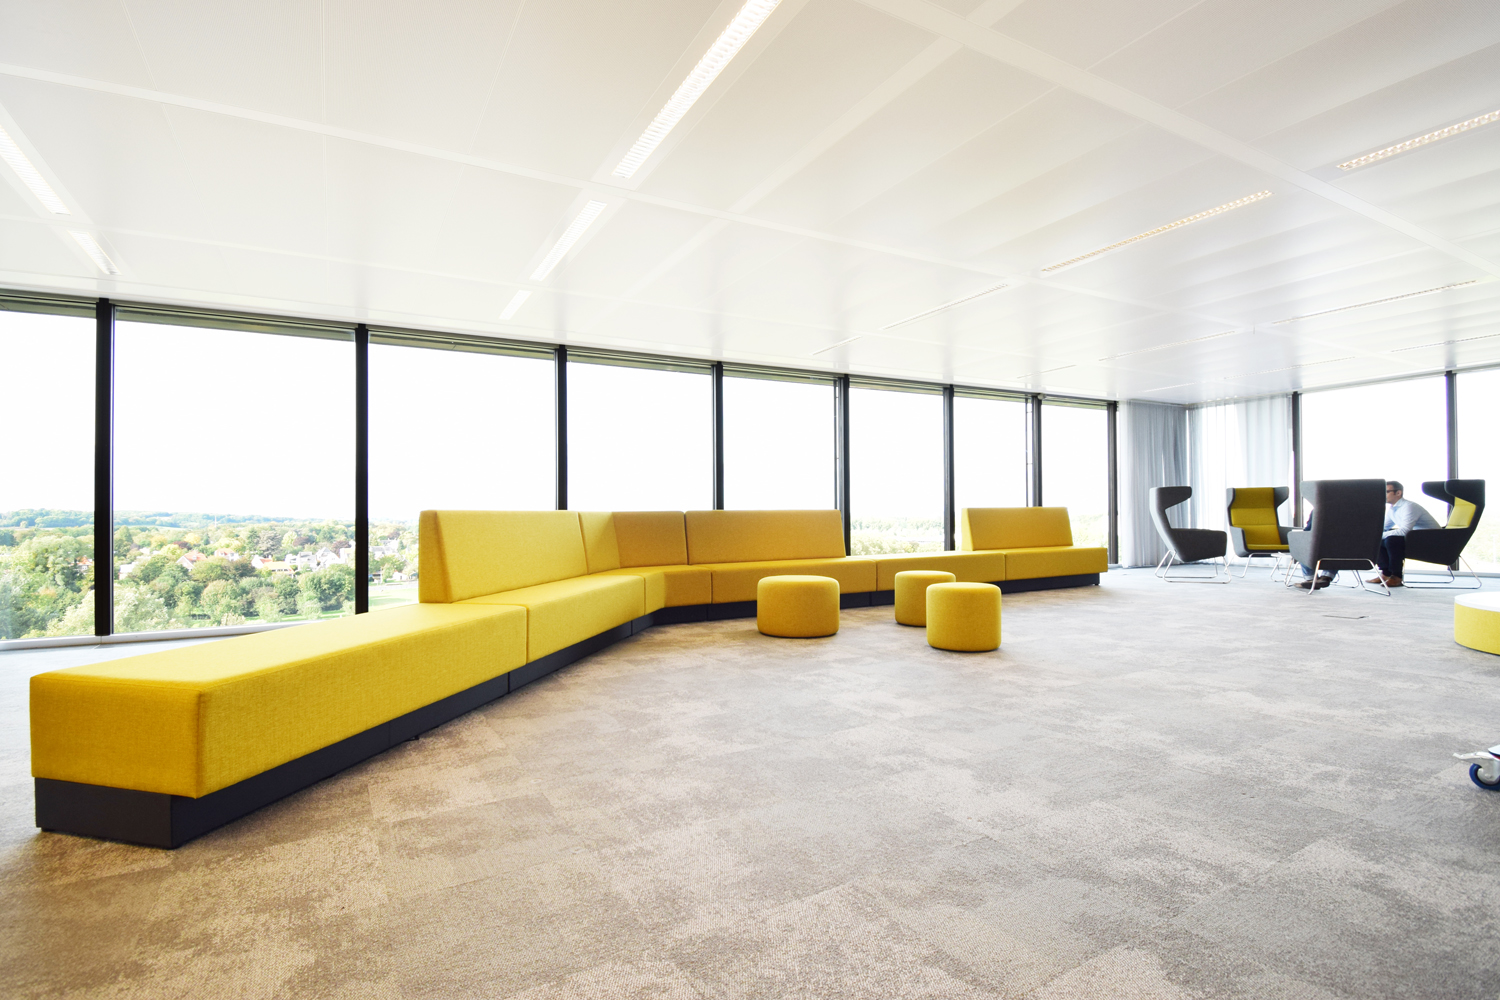 davant_home_adxactive_loungebank_oplocatie_campus